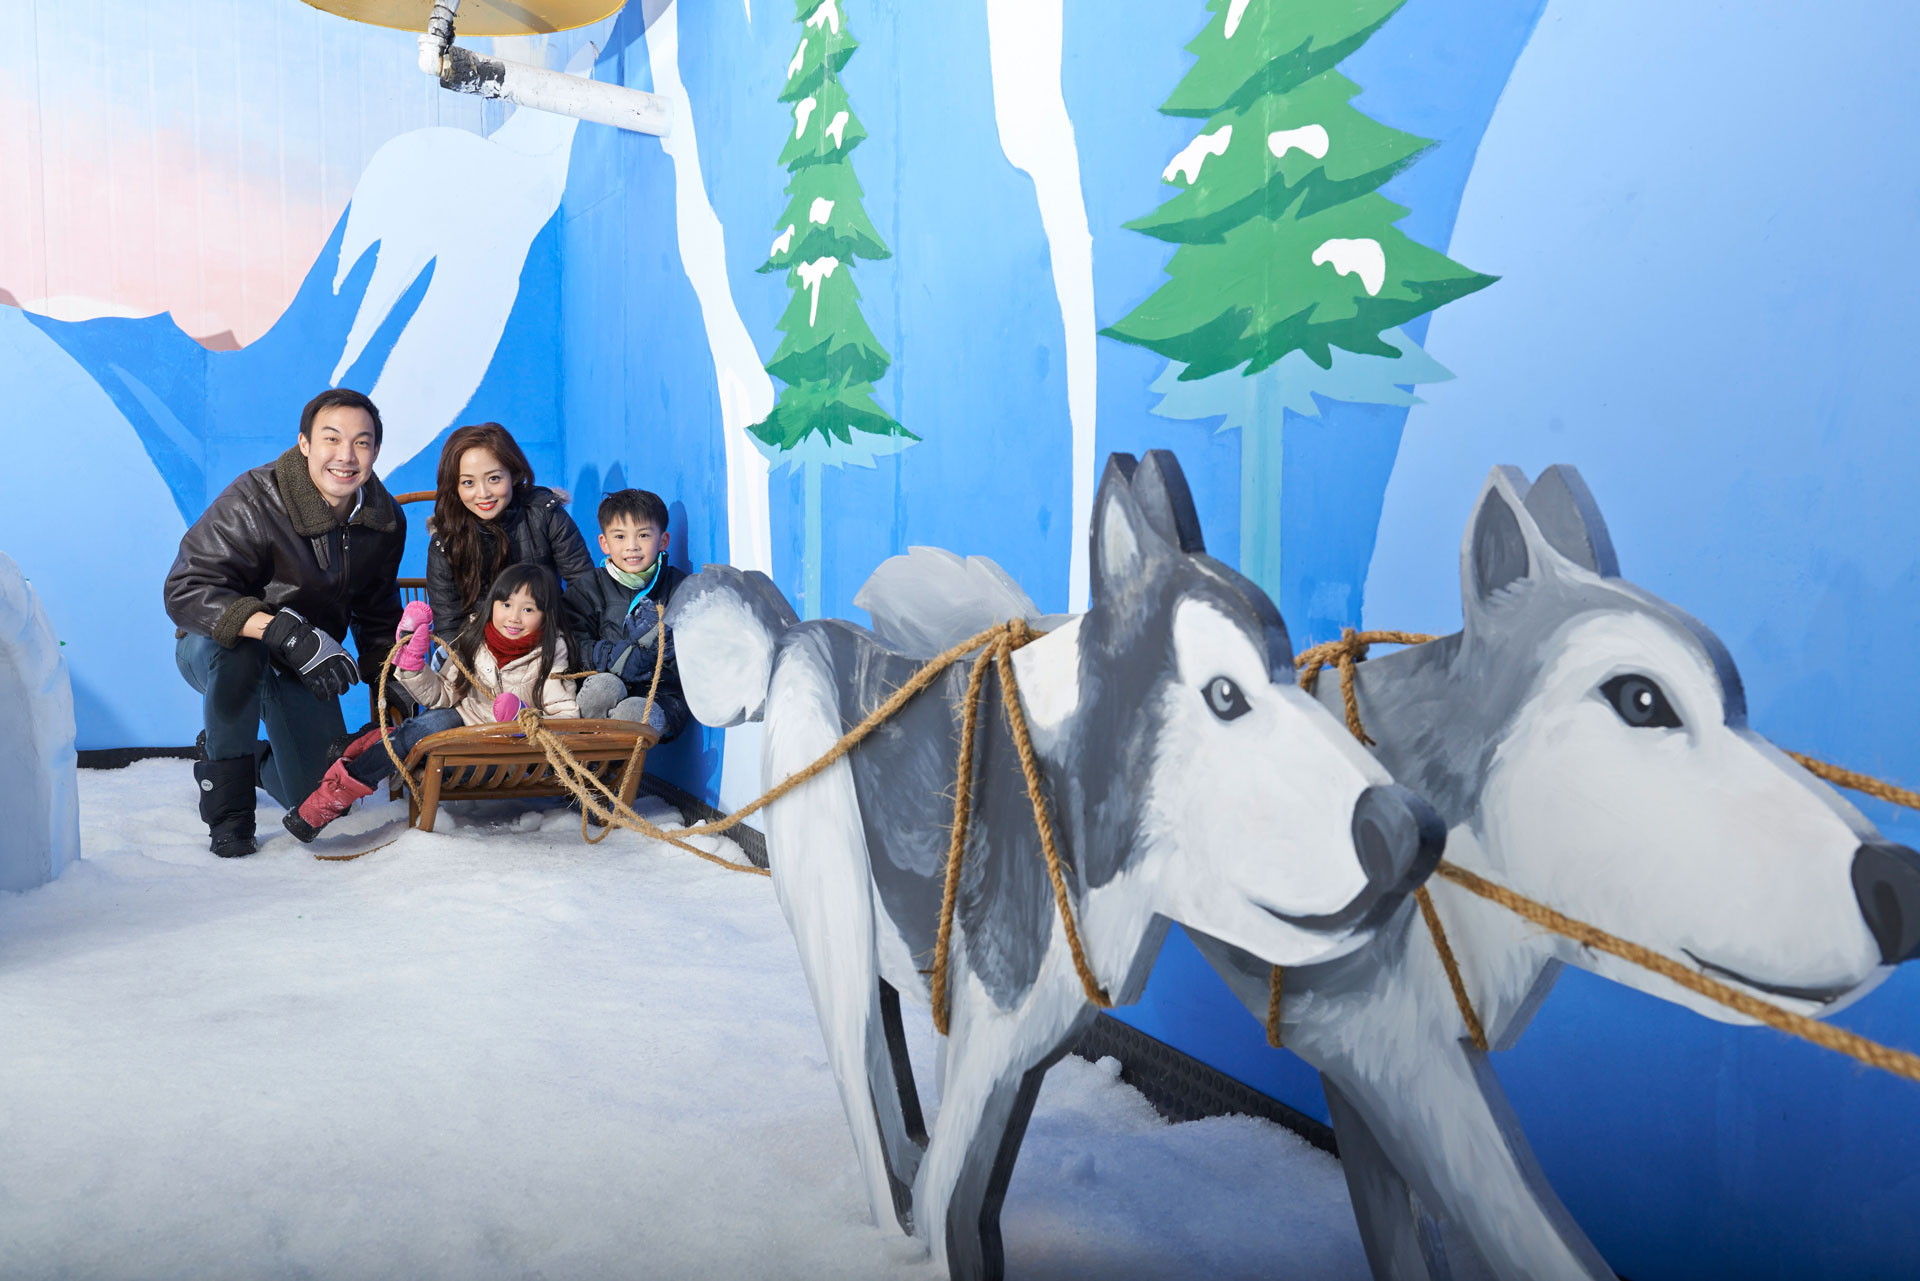 Inuits-Home-Dog-Sleigh